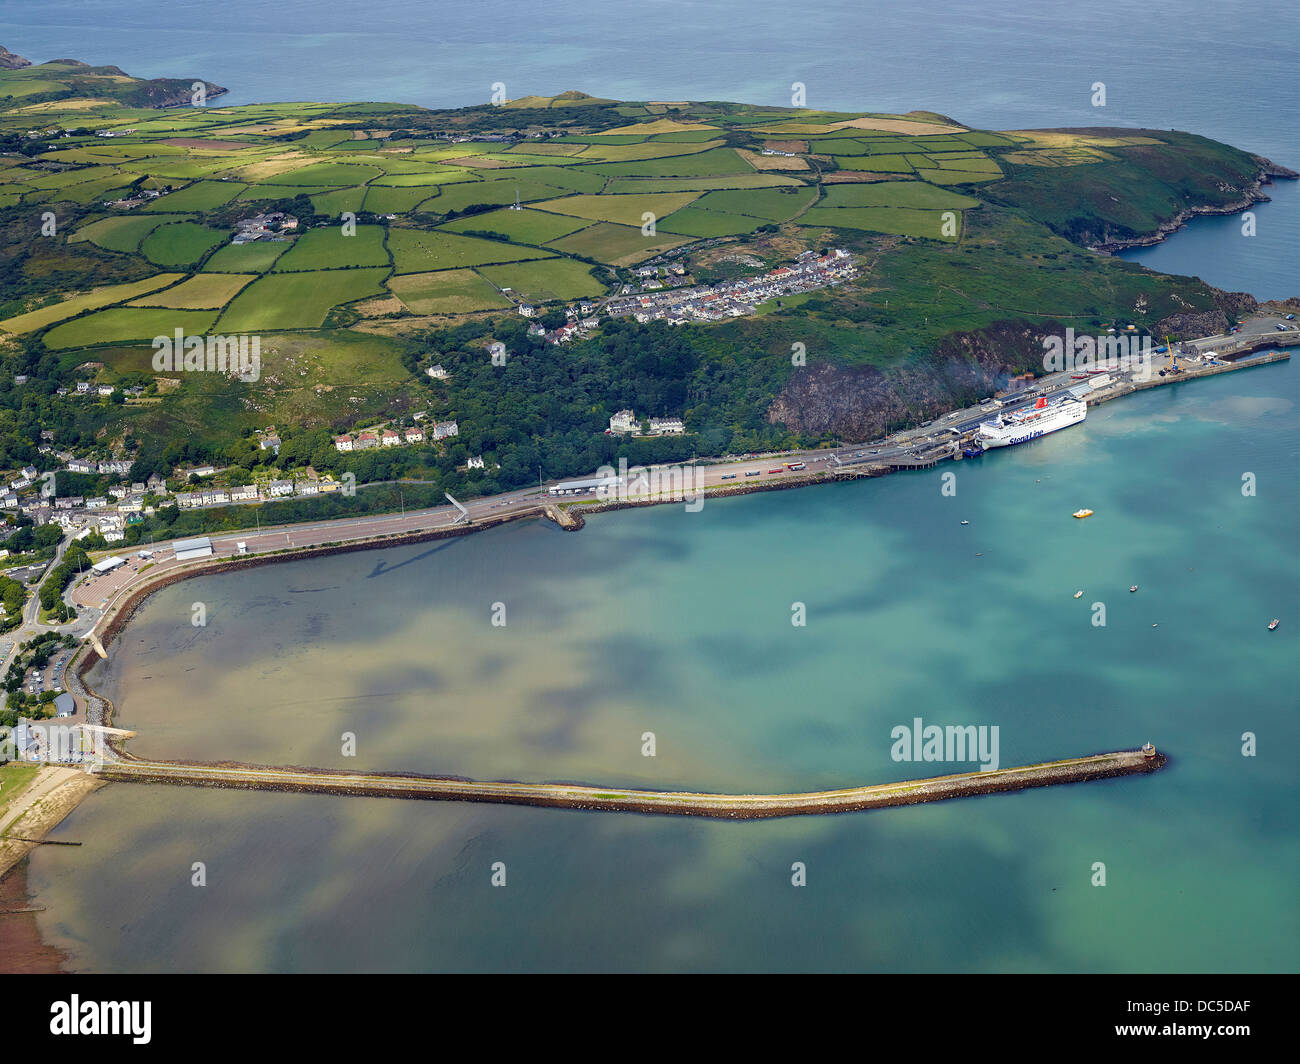 The ferry port of Fishguard, West Wales, UK - Stock Image